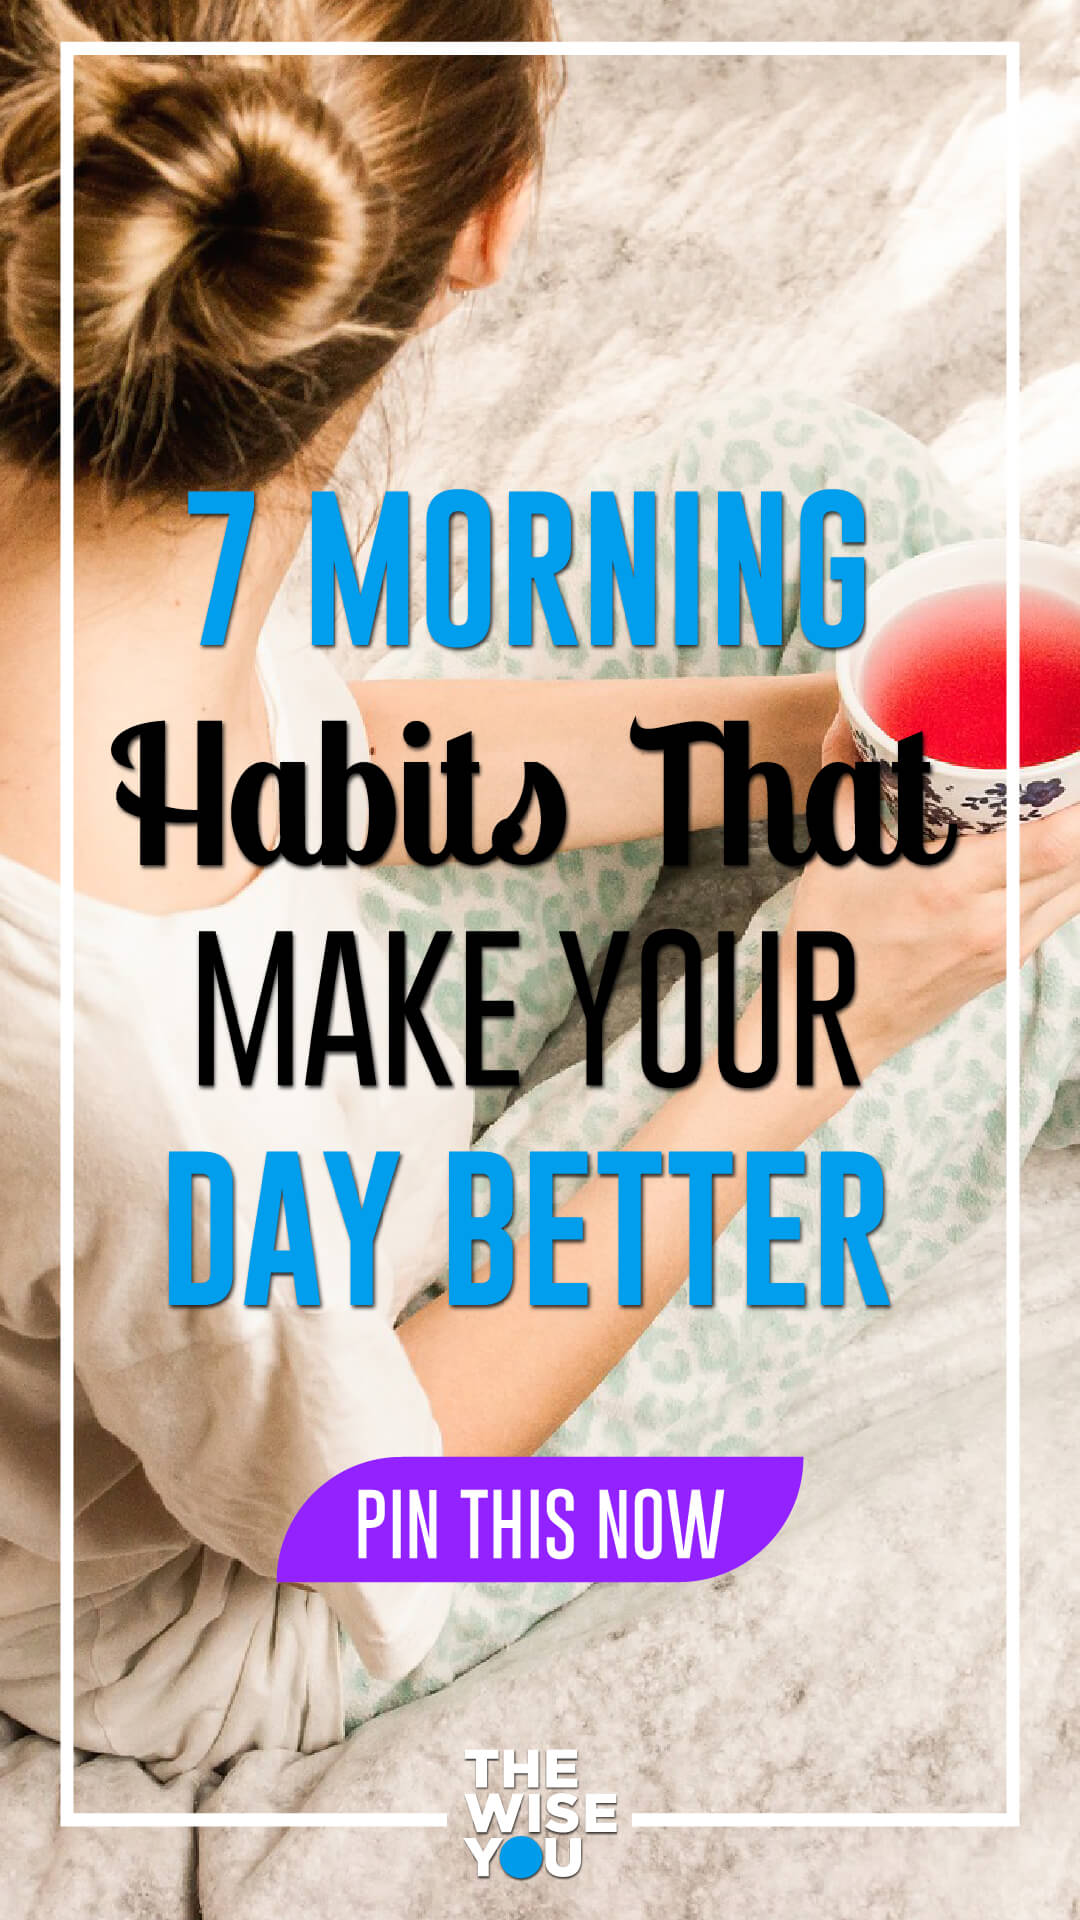 7 Morning Habits That Make Your Day Better